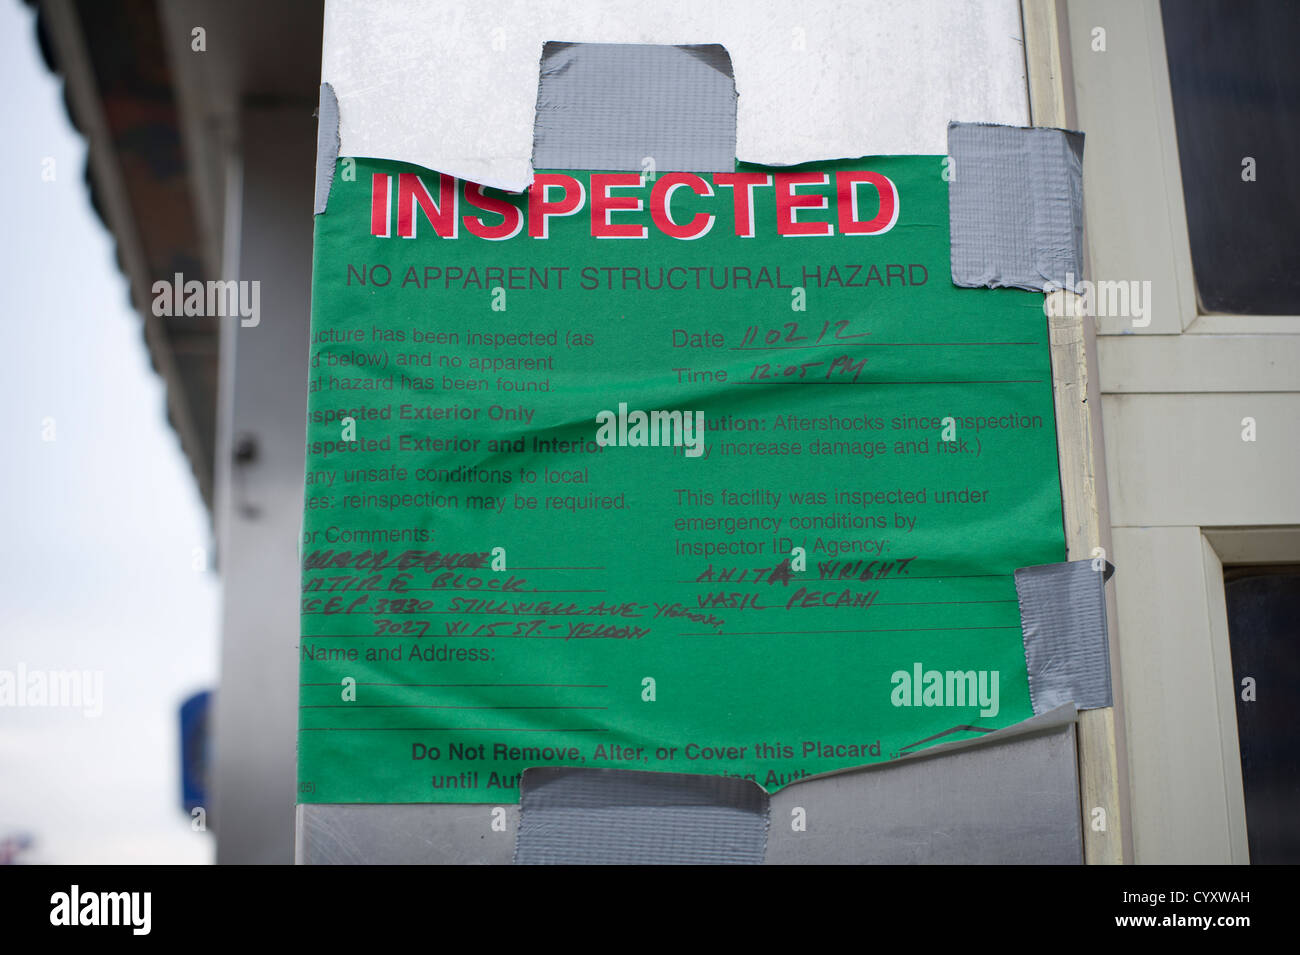 Sign posted by New York City states the building has been inspected and no apparent structural hazard was found - Stock Image